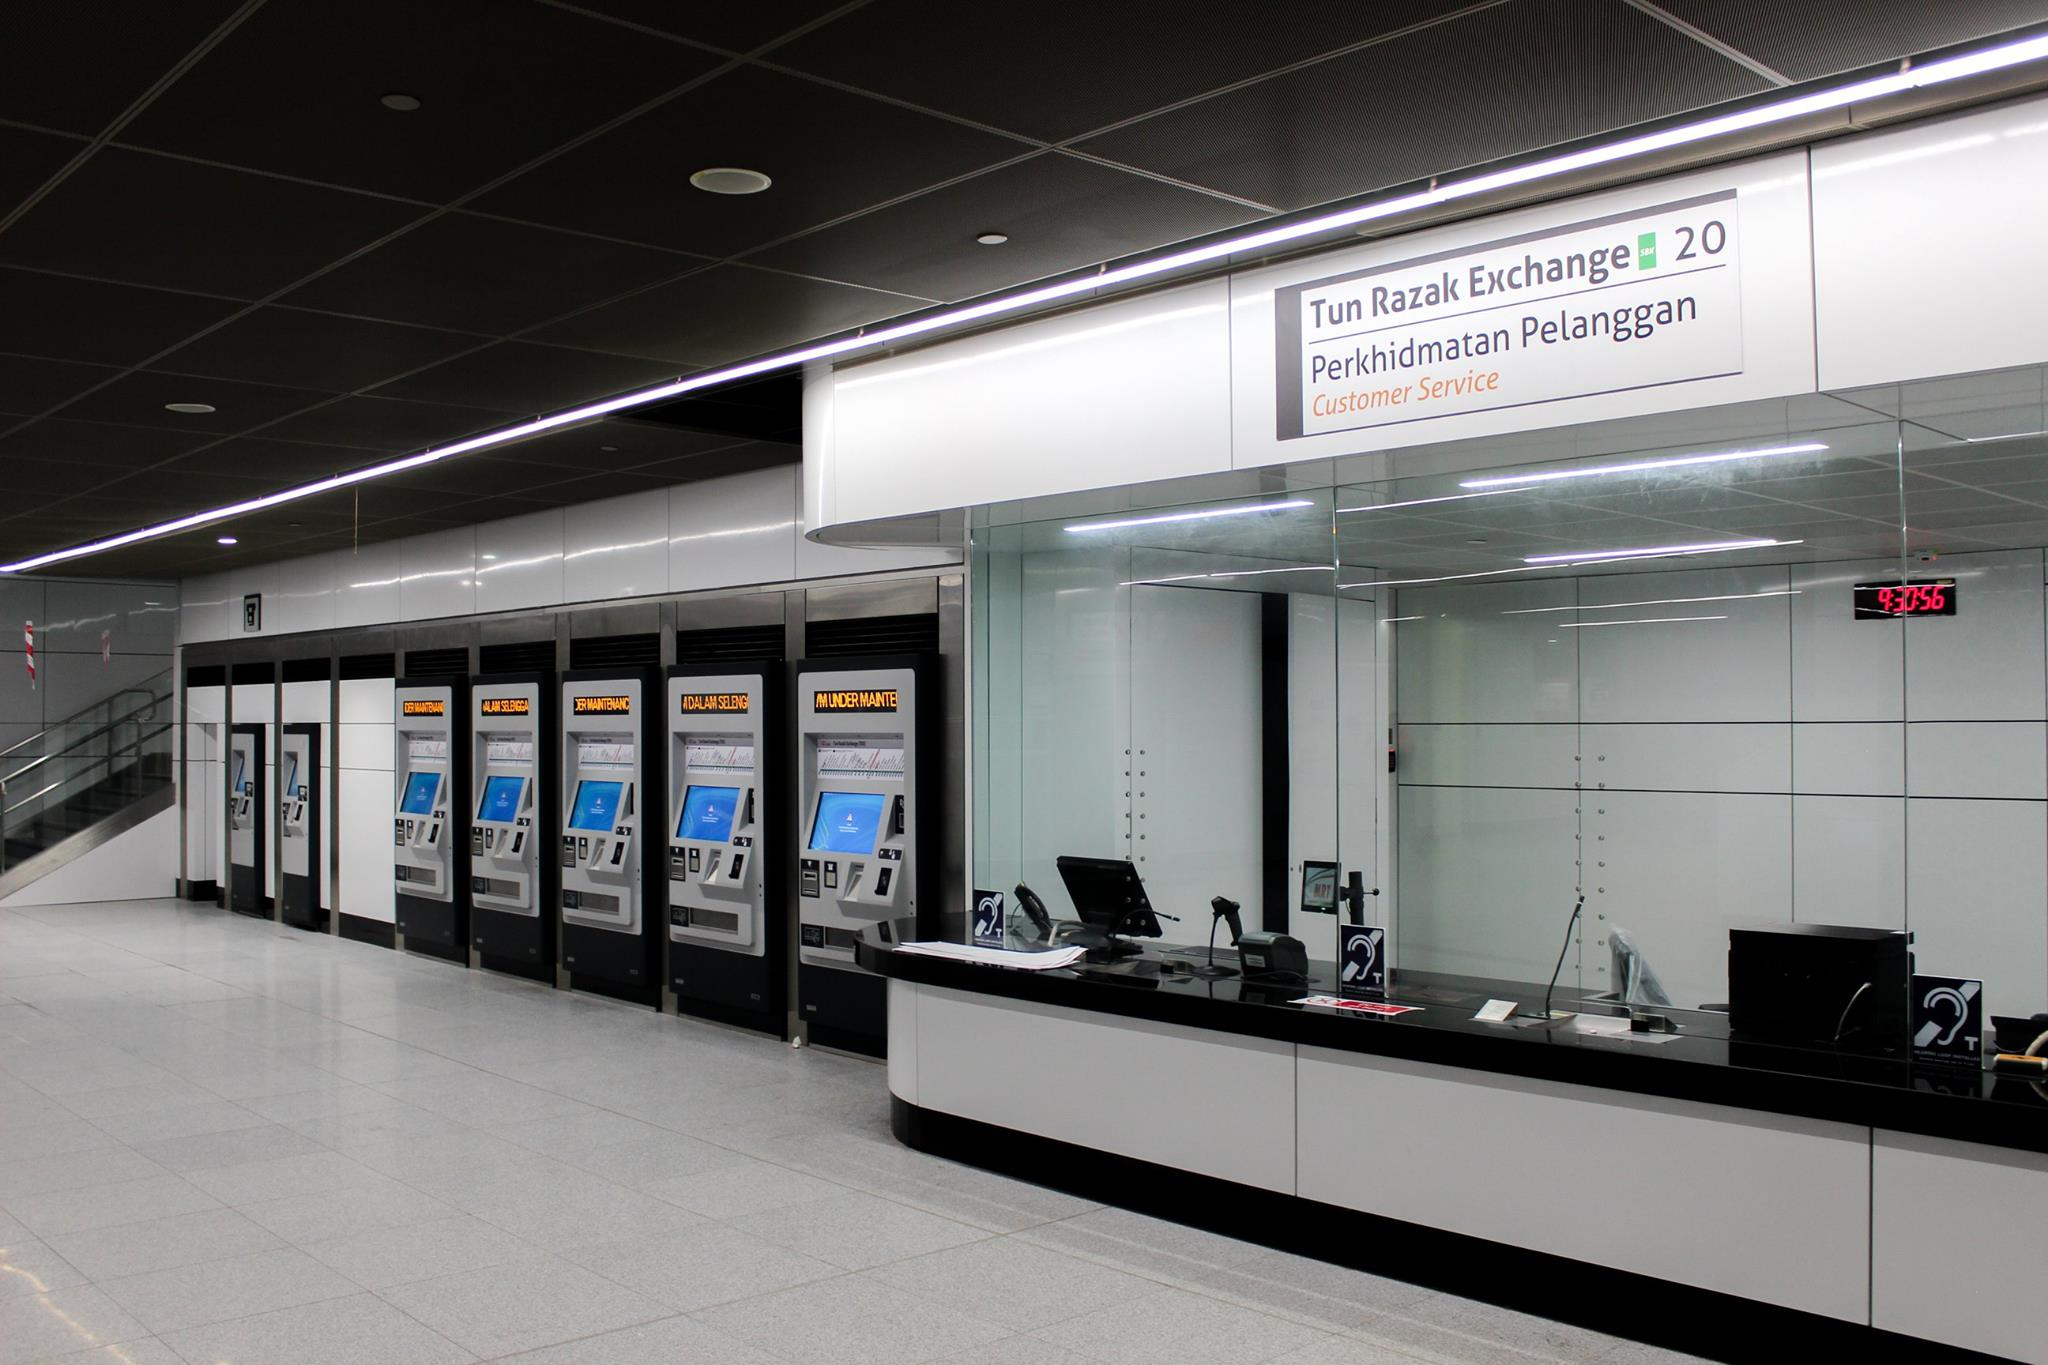 TRX Exchange Station PCIC